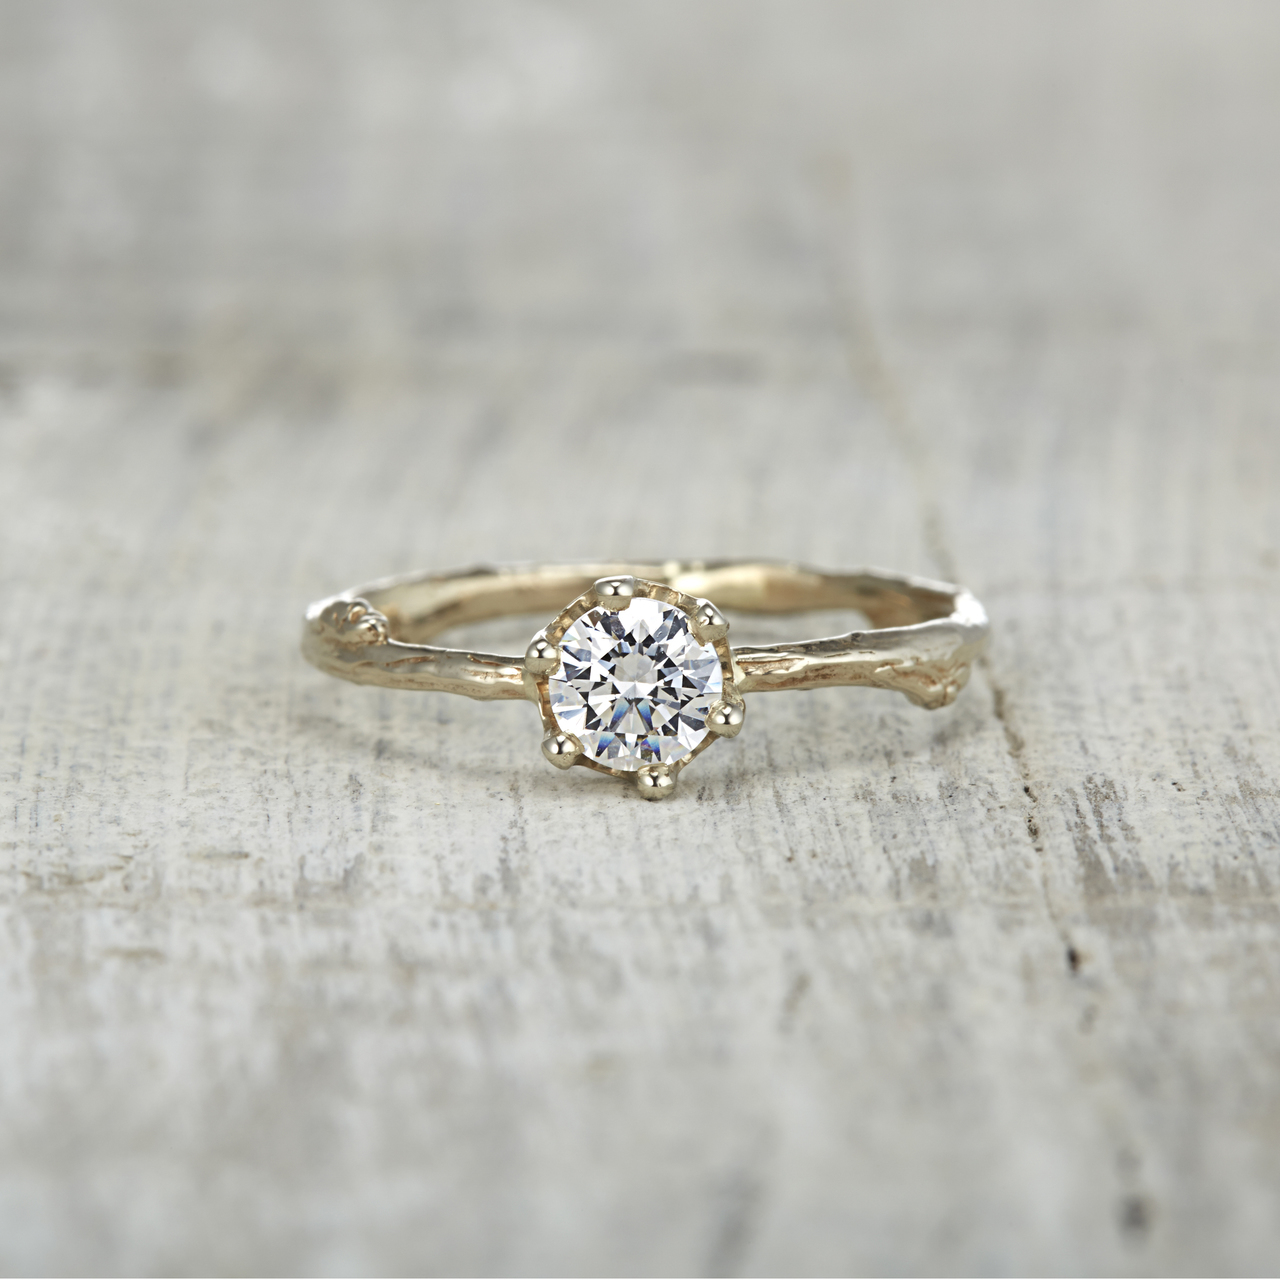 Diamond Twig Engagement Rings for Your Nature-Loving Bride-to-Be